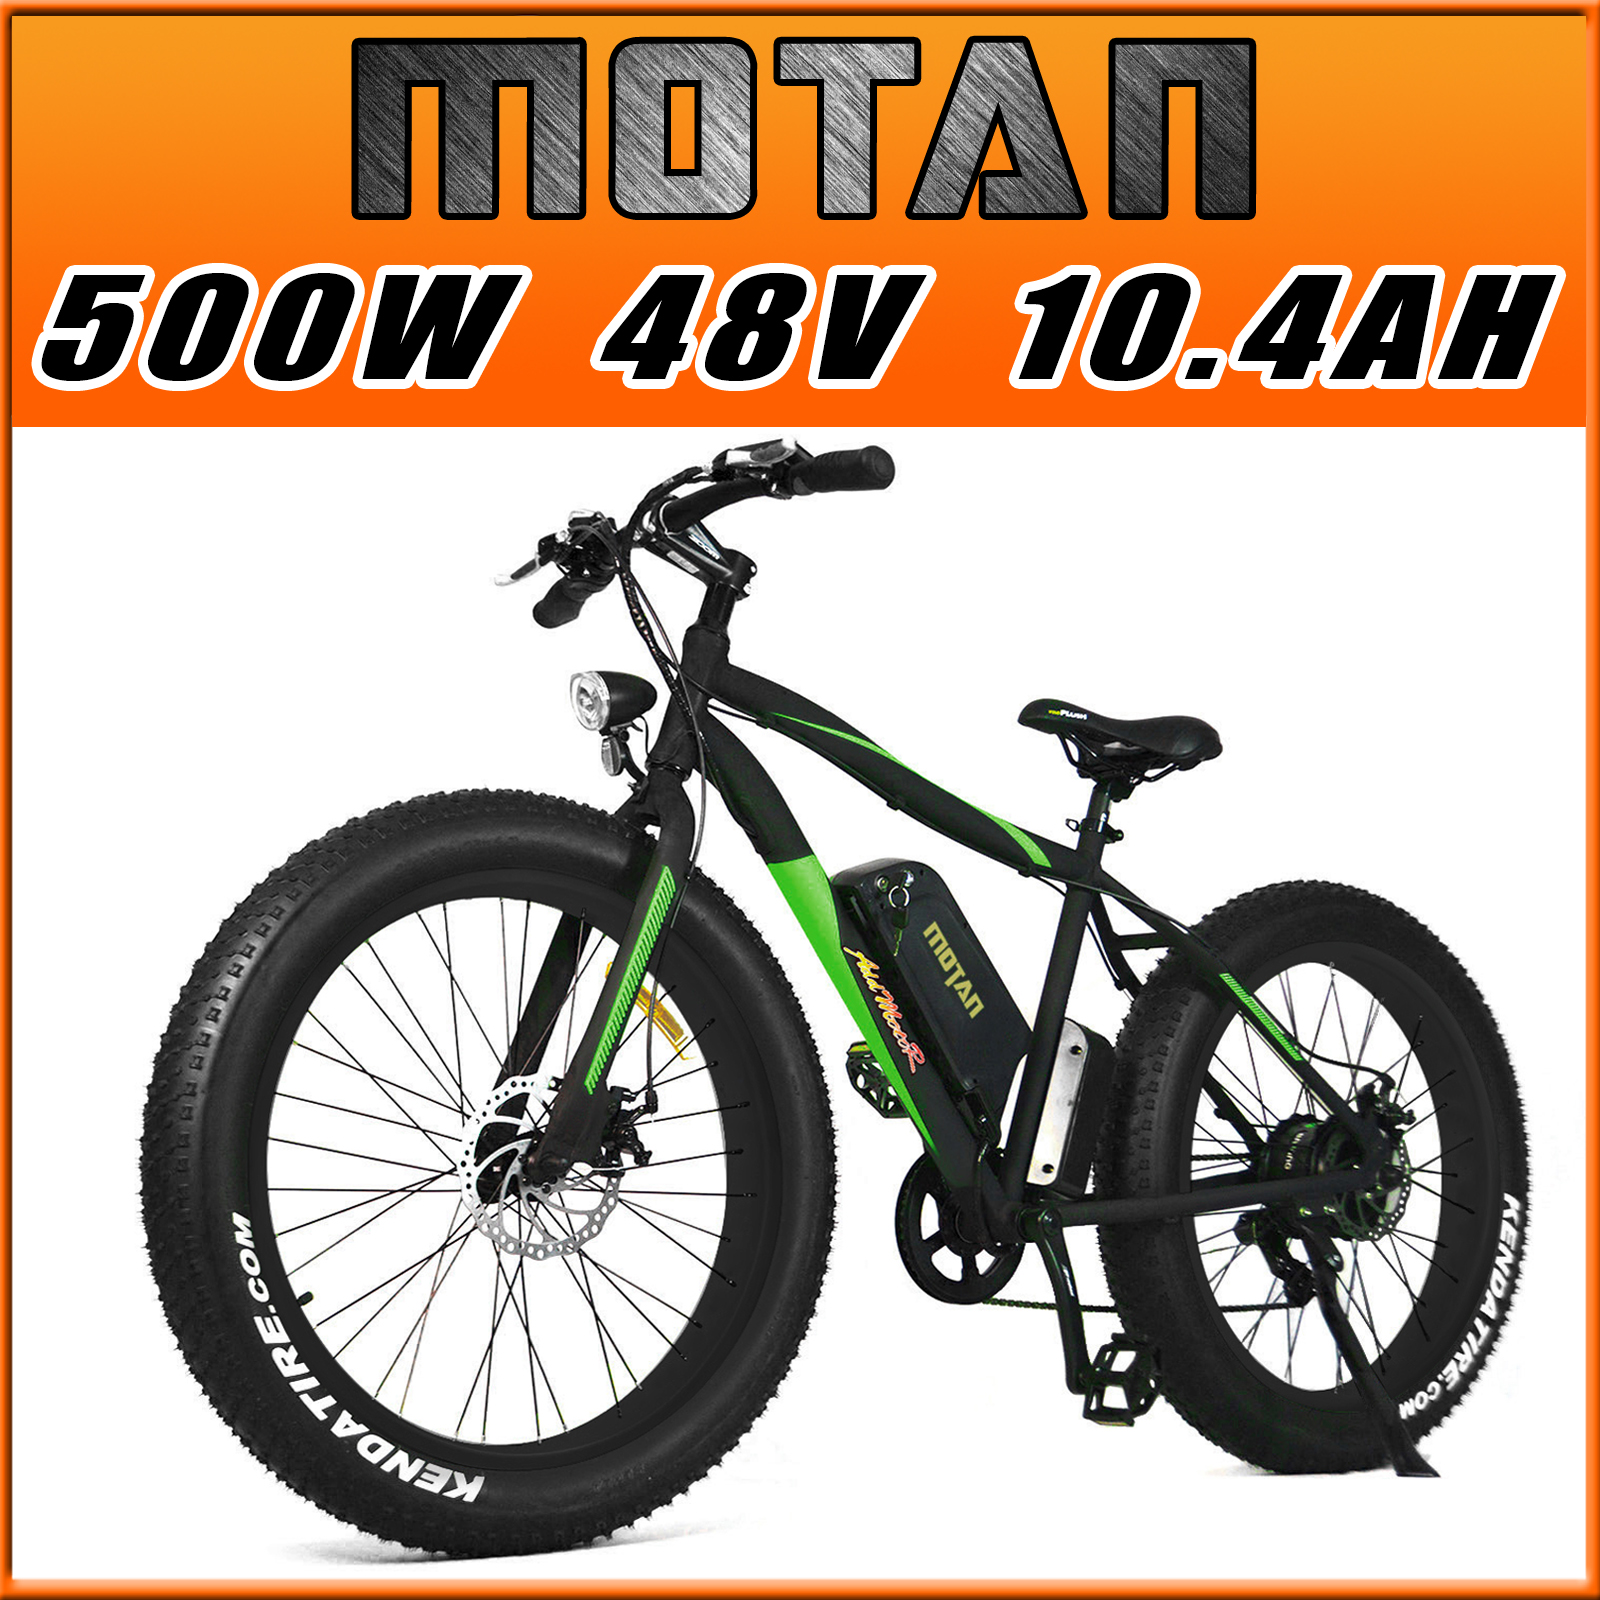 Addmotor MOTAN Fat Tire Electric Bicycles M-550 500W 10.4AH Sansung Lithium Cell Battery Green Snow Mountain E-bike